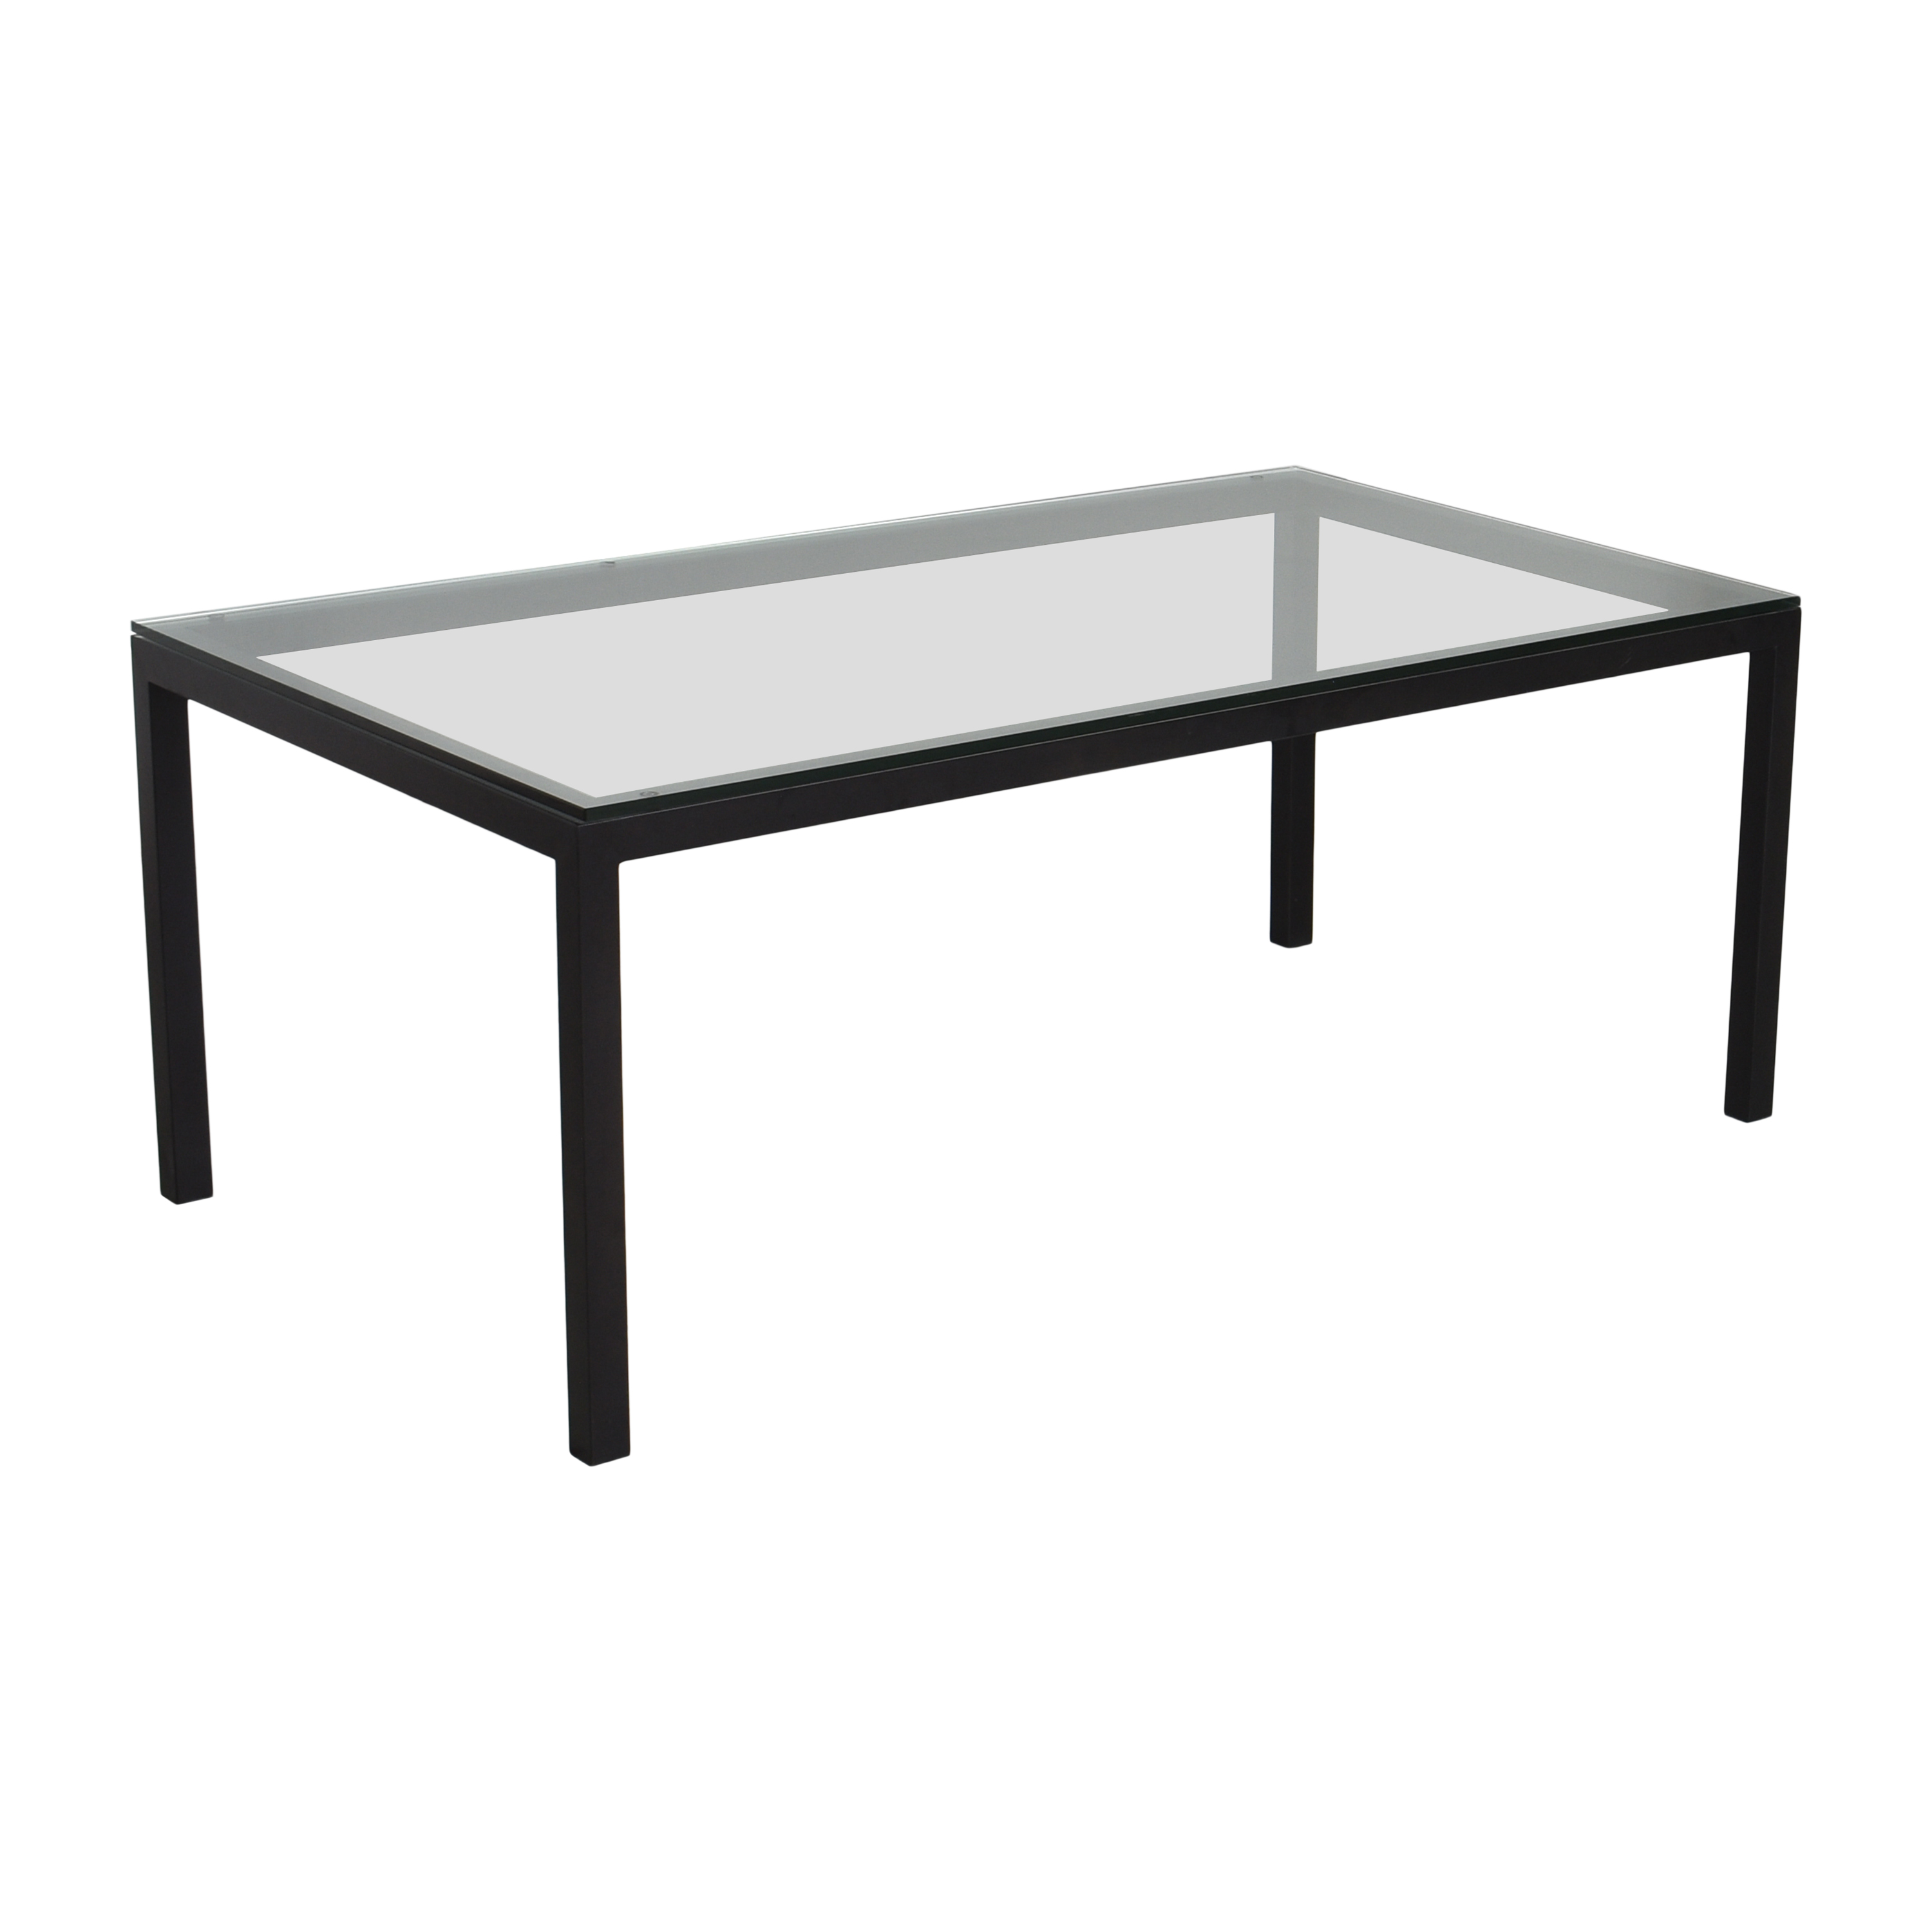 Crate & Barrel Crate & Barrel Parsons Dining Table ct